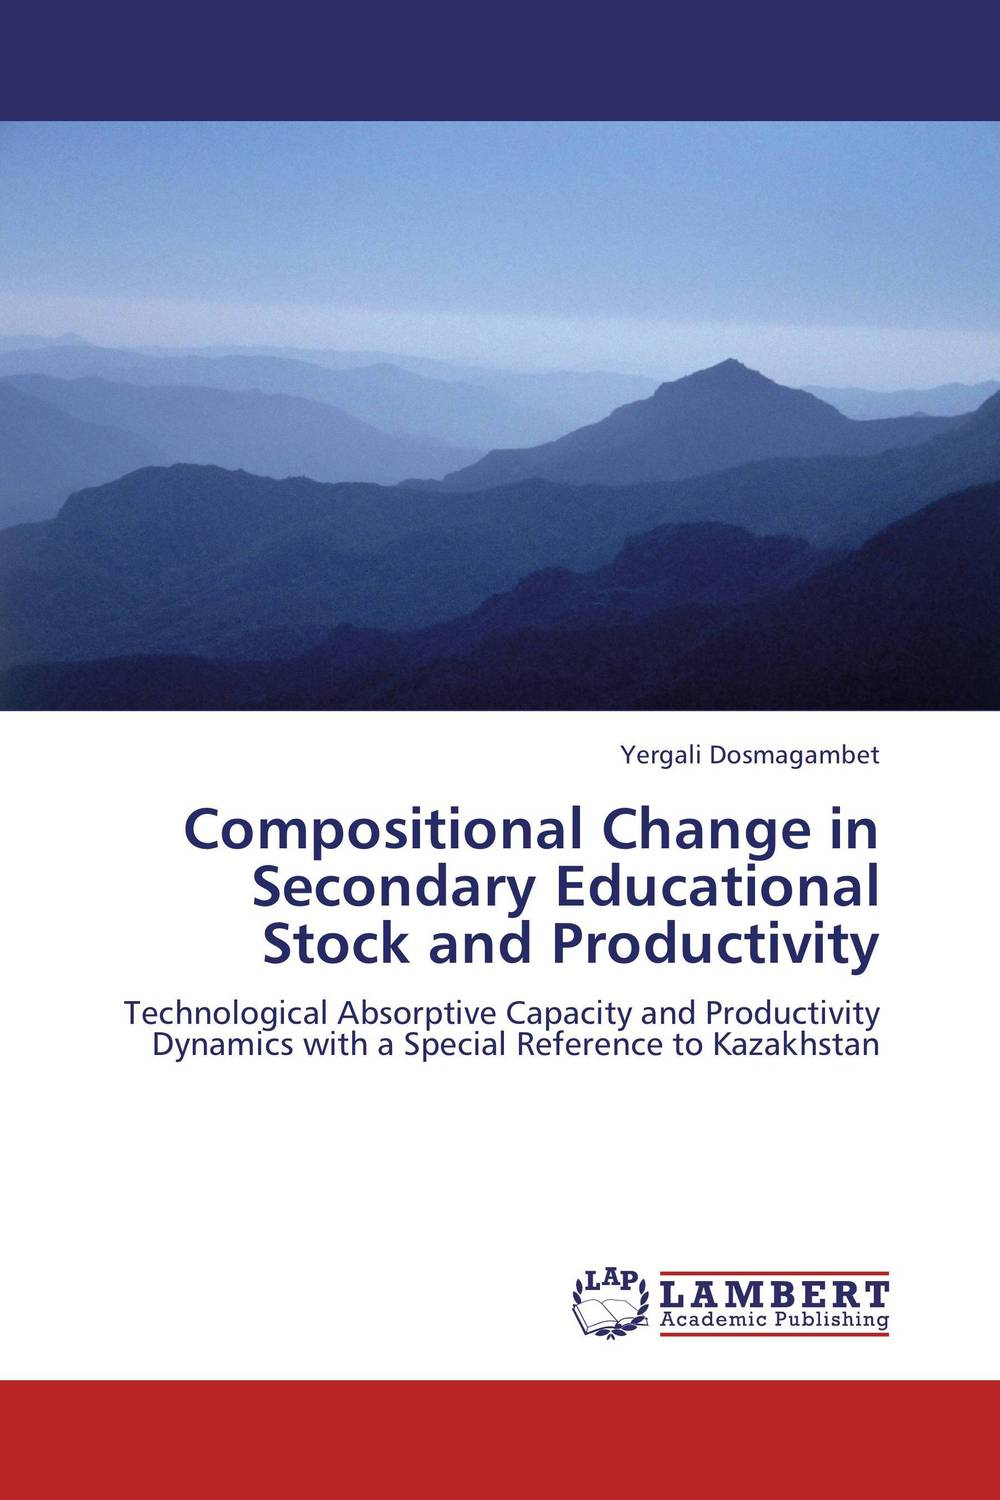 Compositional Change in Secondary Educational Stock and Productivity